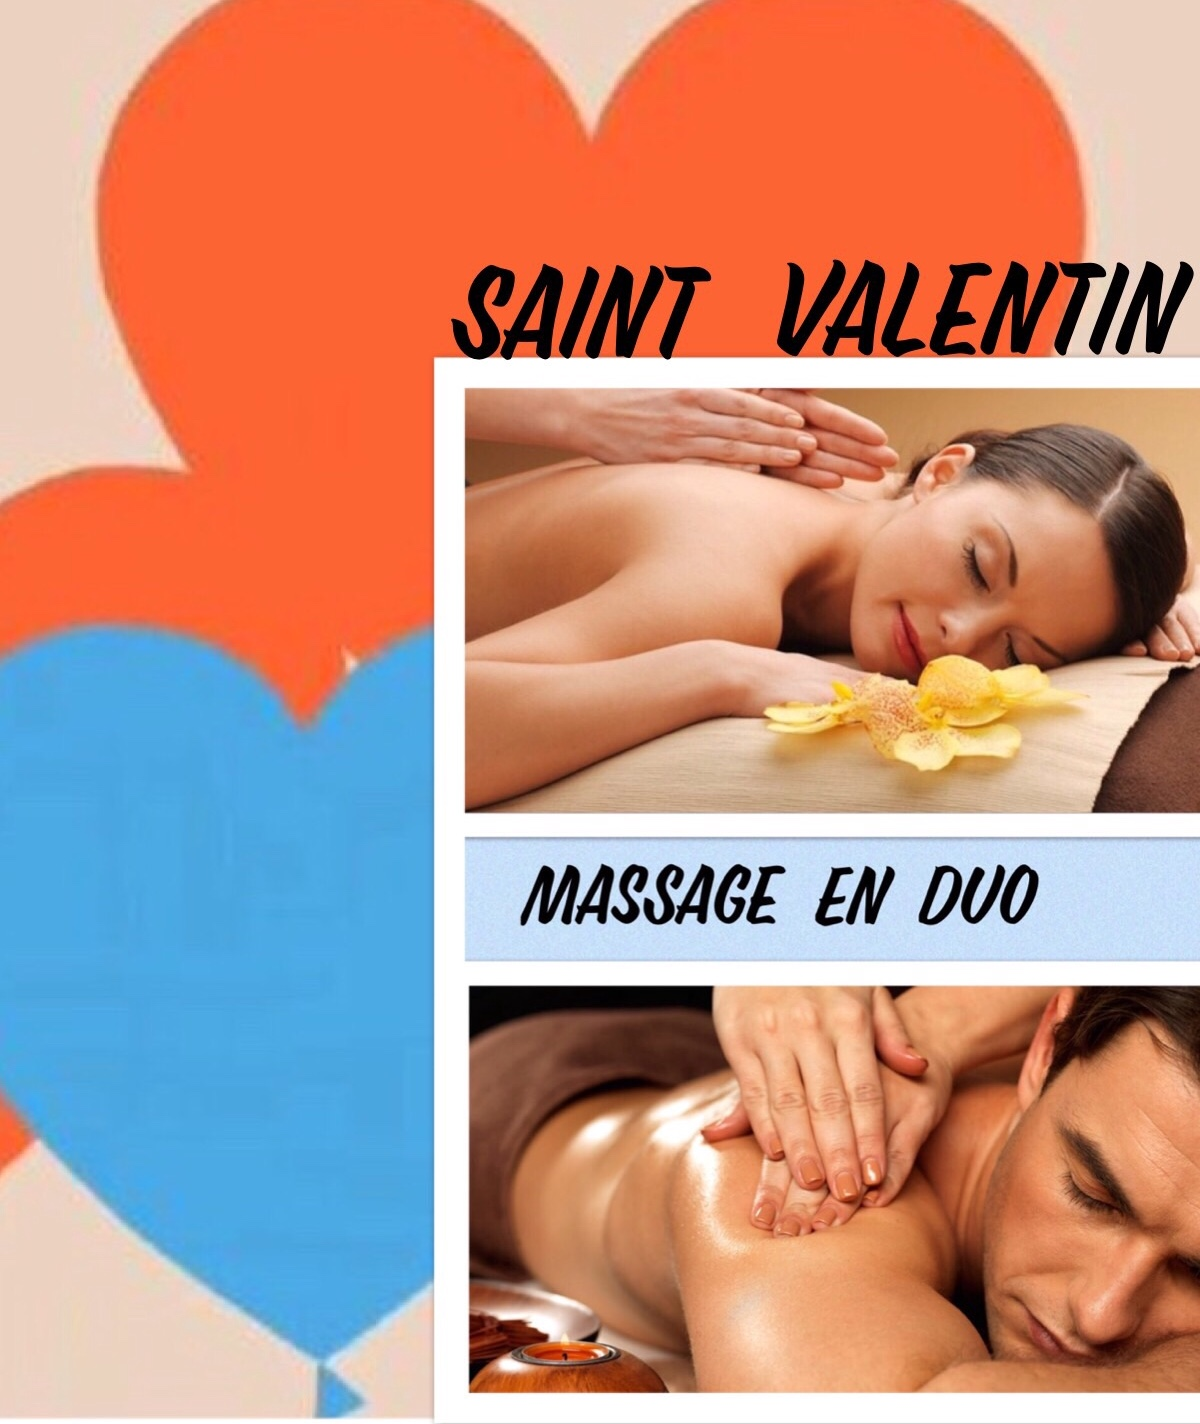 http://institut-marjolaine.ouvaton.org/wp-content/uploads/2018/02/St-Valentin-Duo.jpg